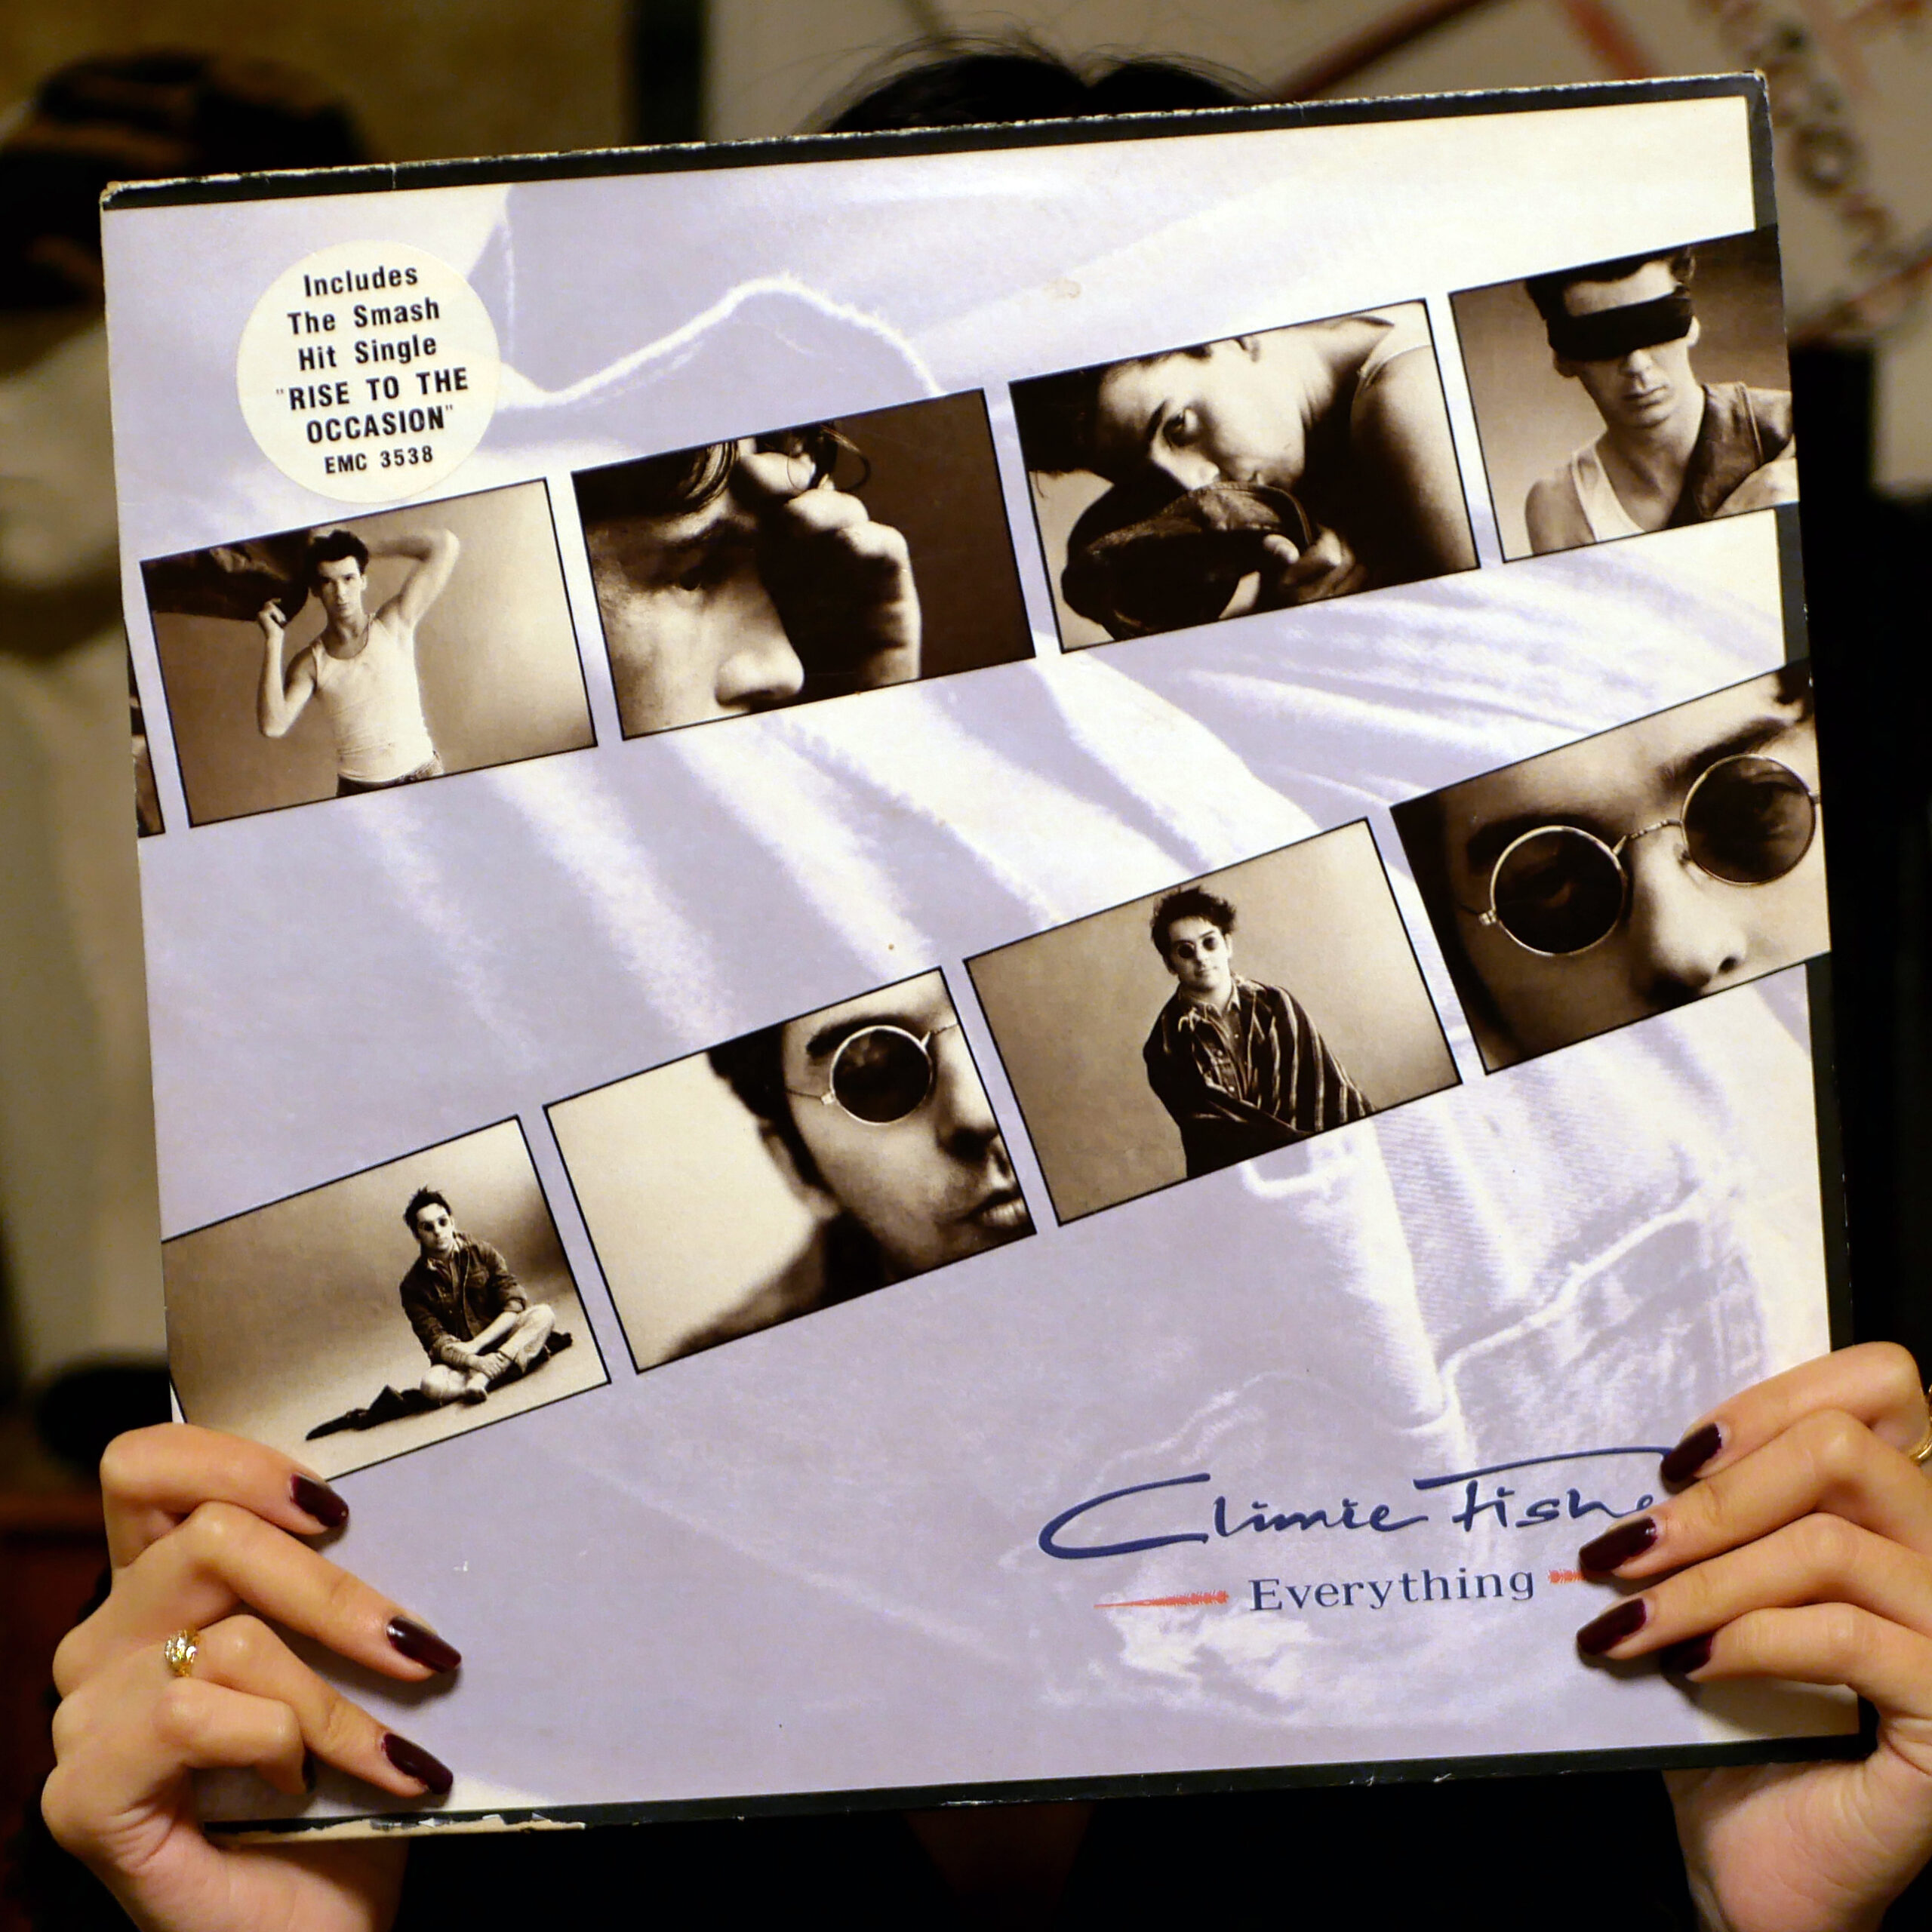 Climie Fisher – Everything [LP, 1987]